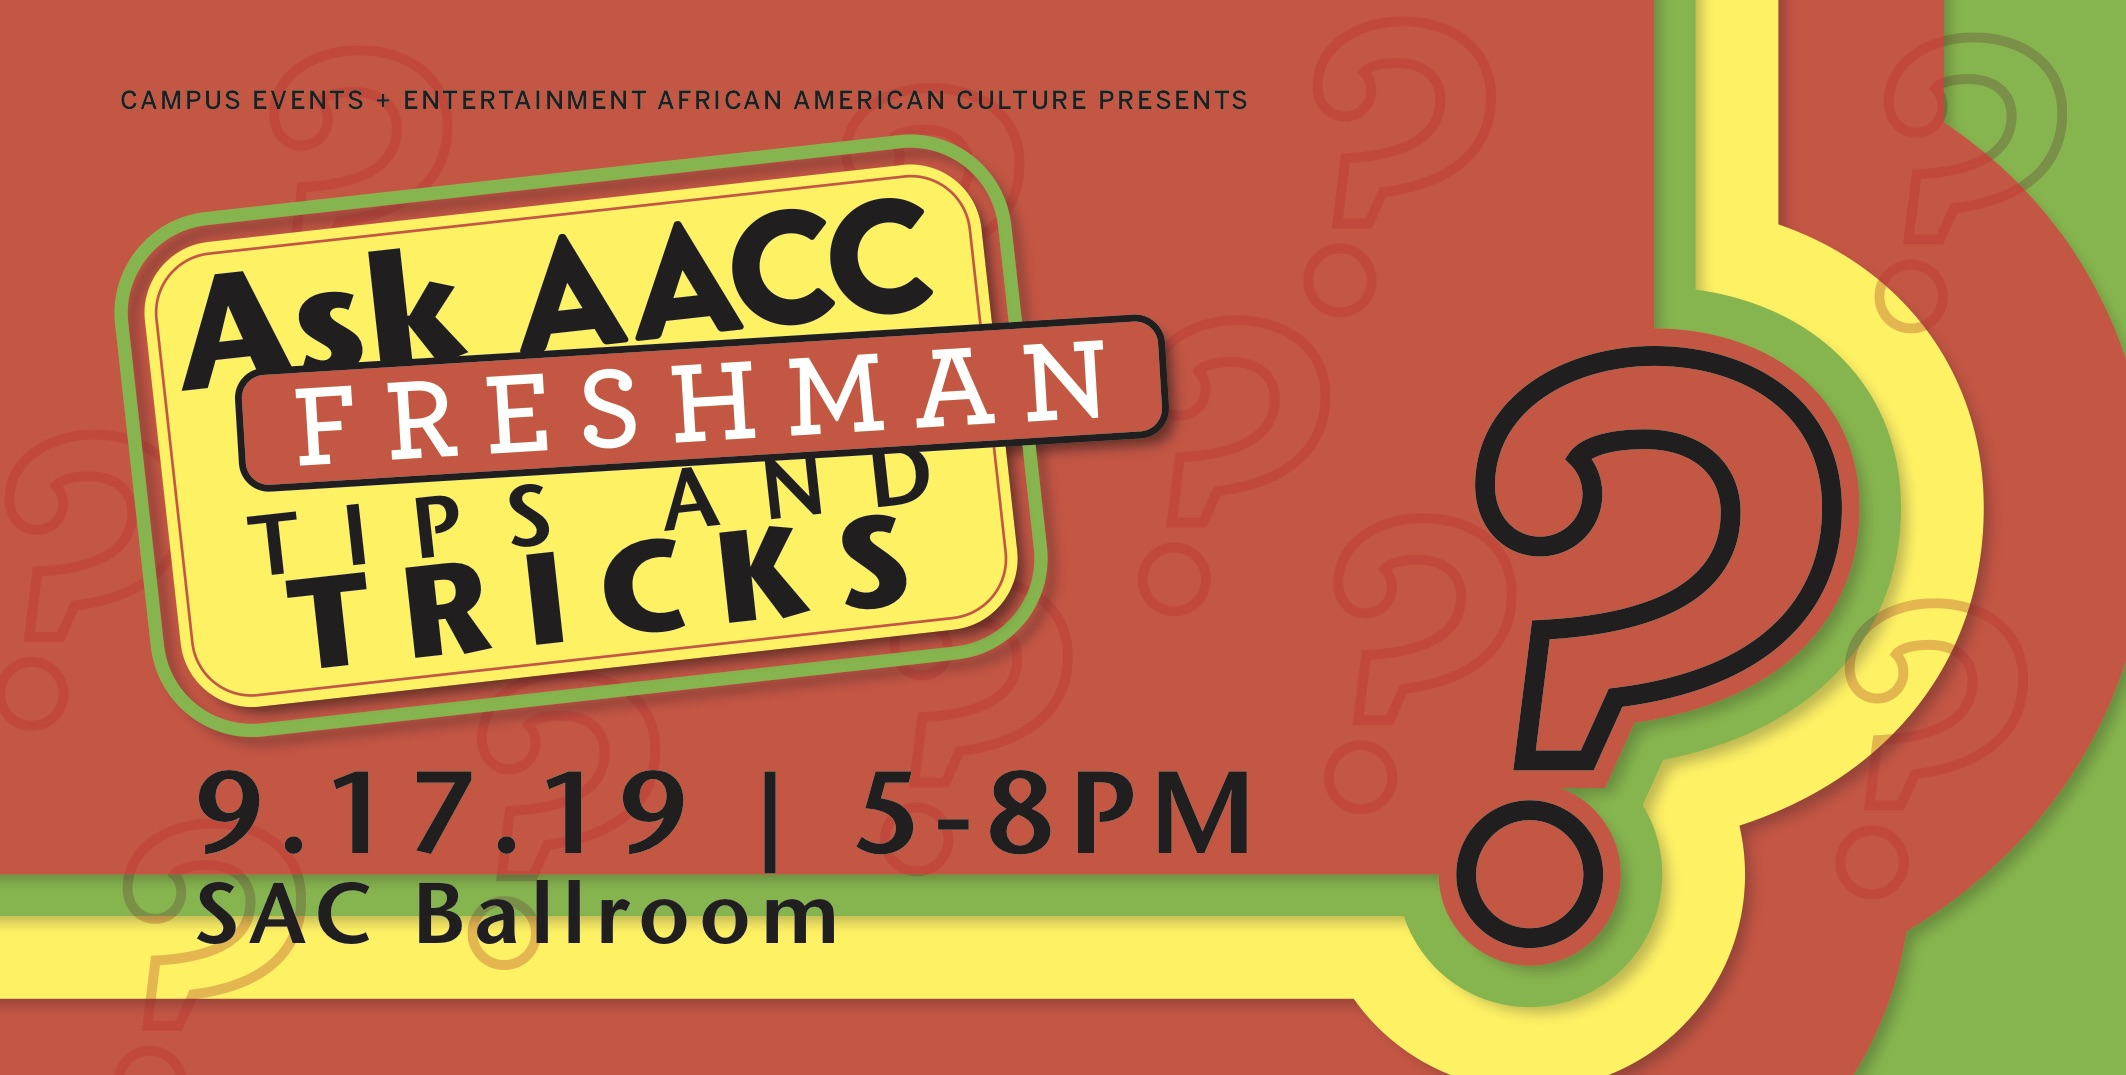 Ask AACC Tuesday September 17, 2019 at 6 pm